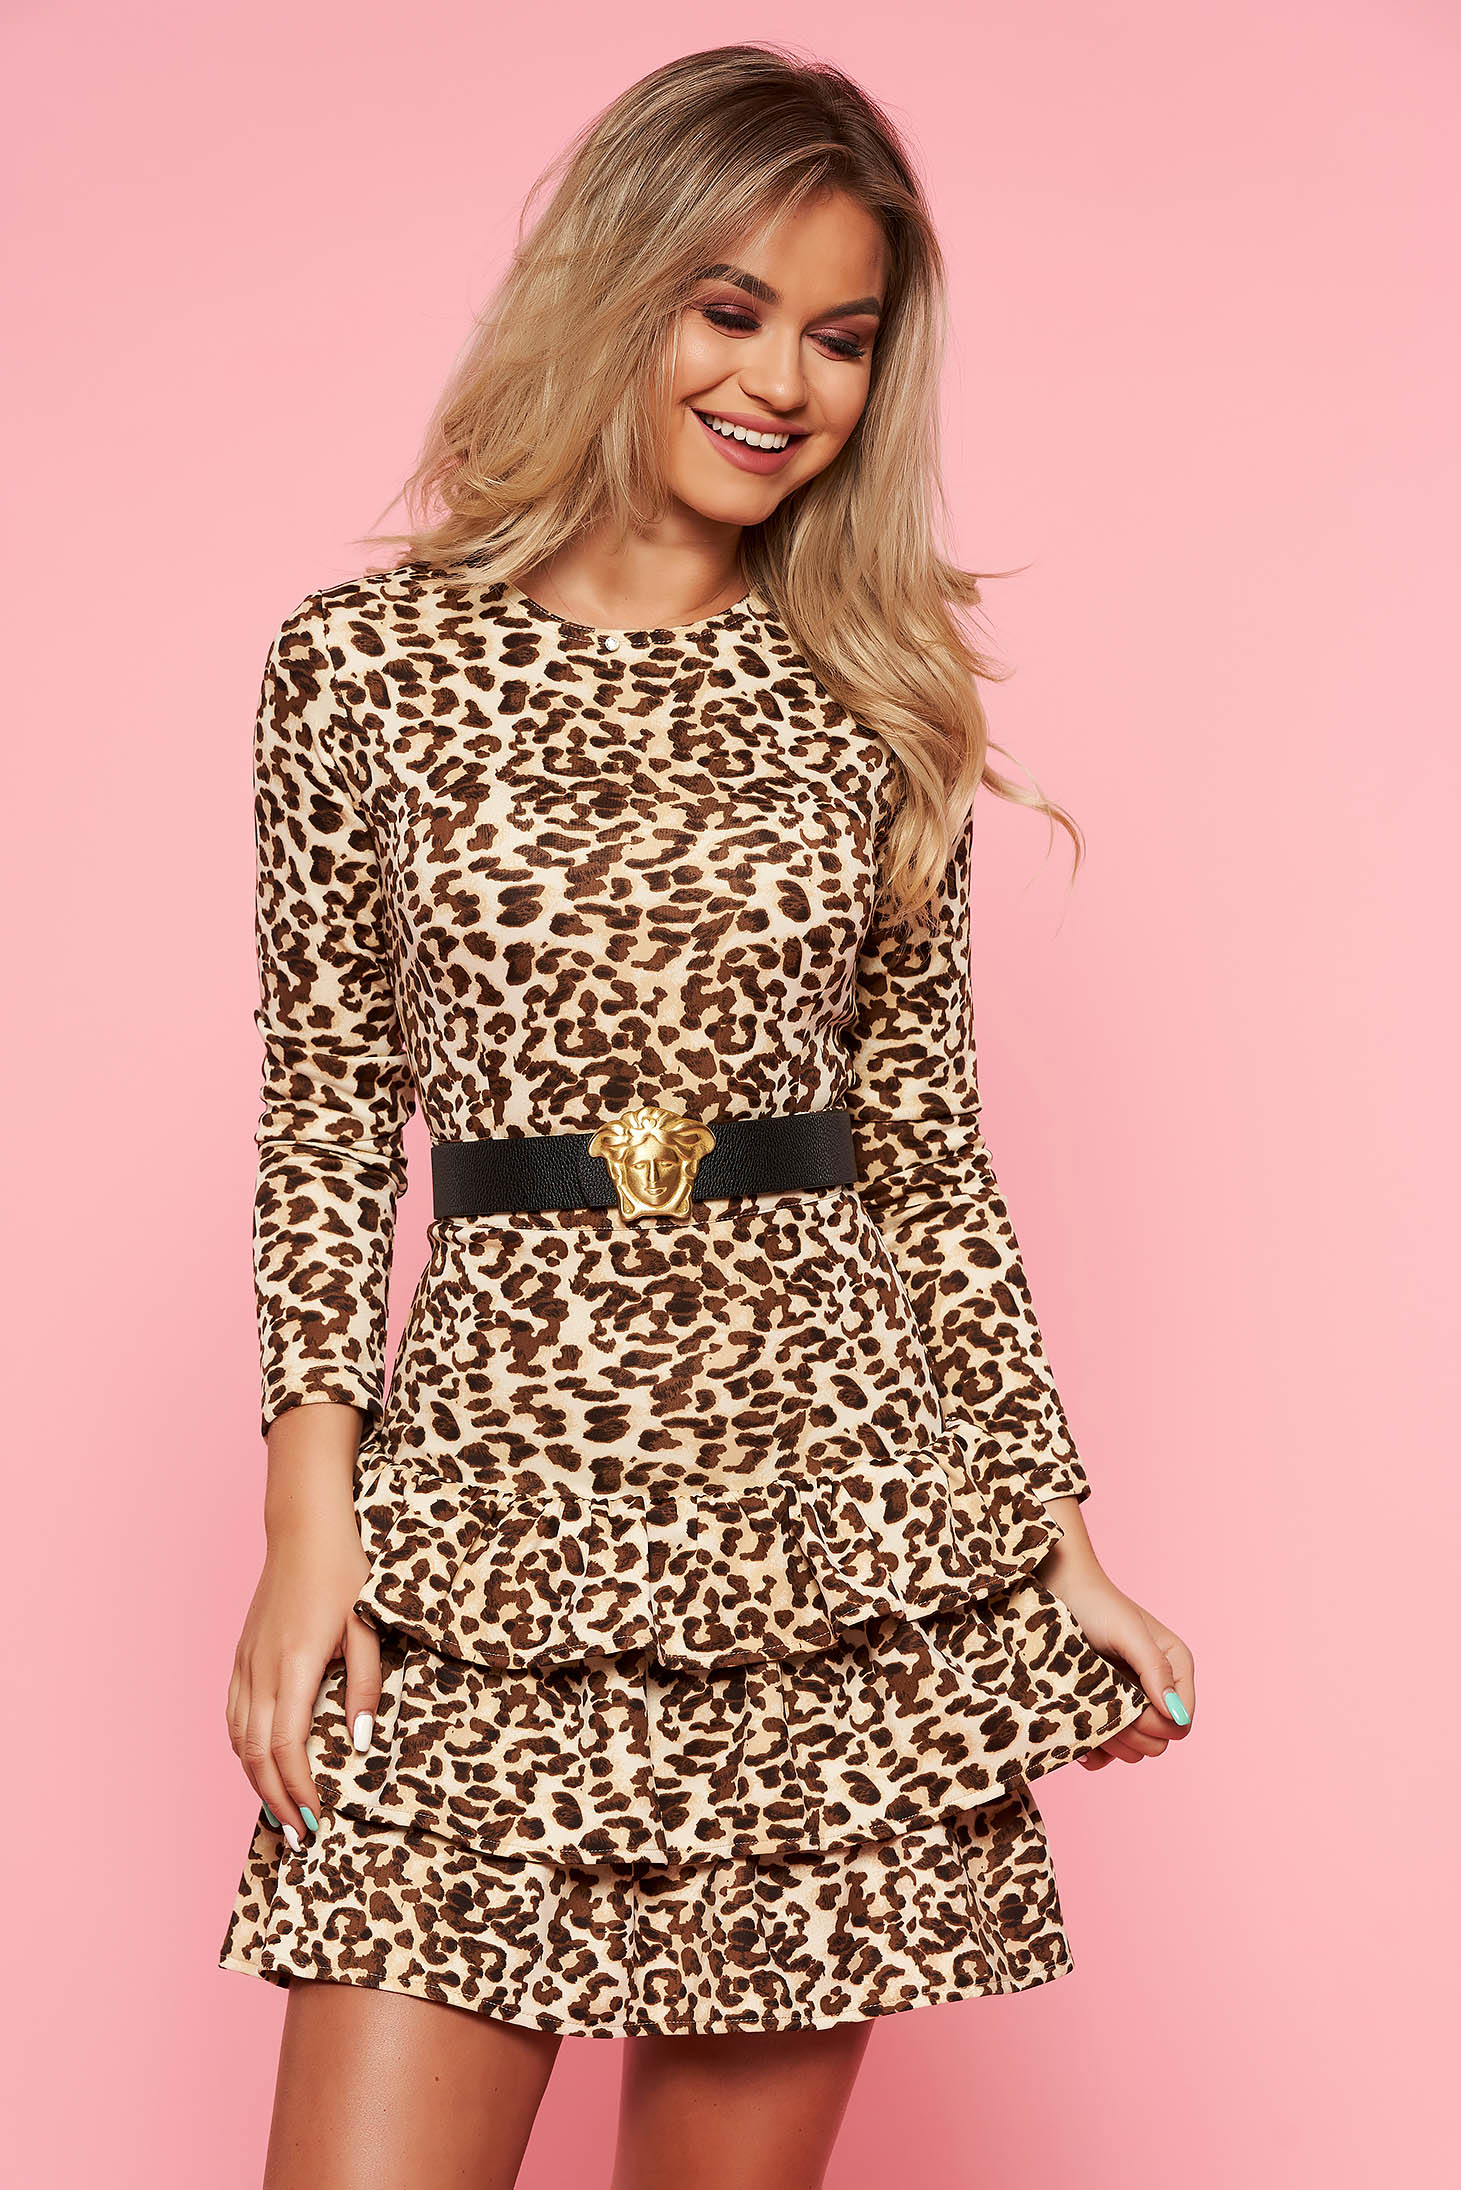 Brown clubbing dress with tented cut accessorized with belt